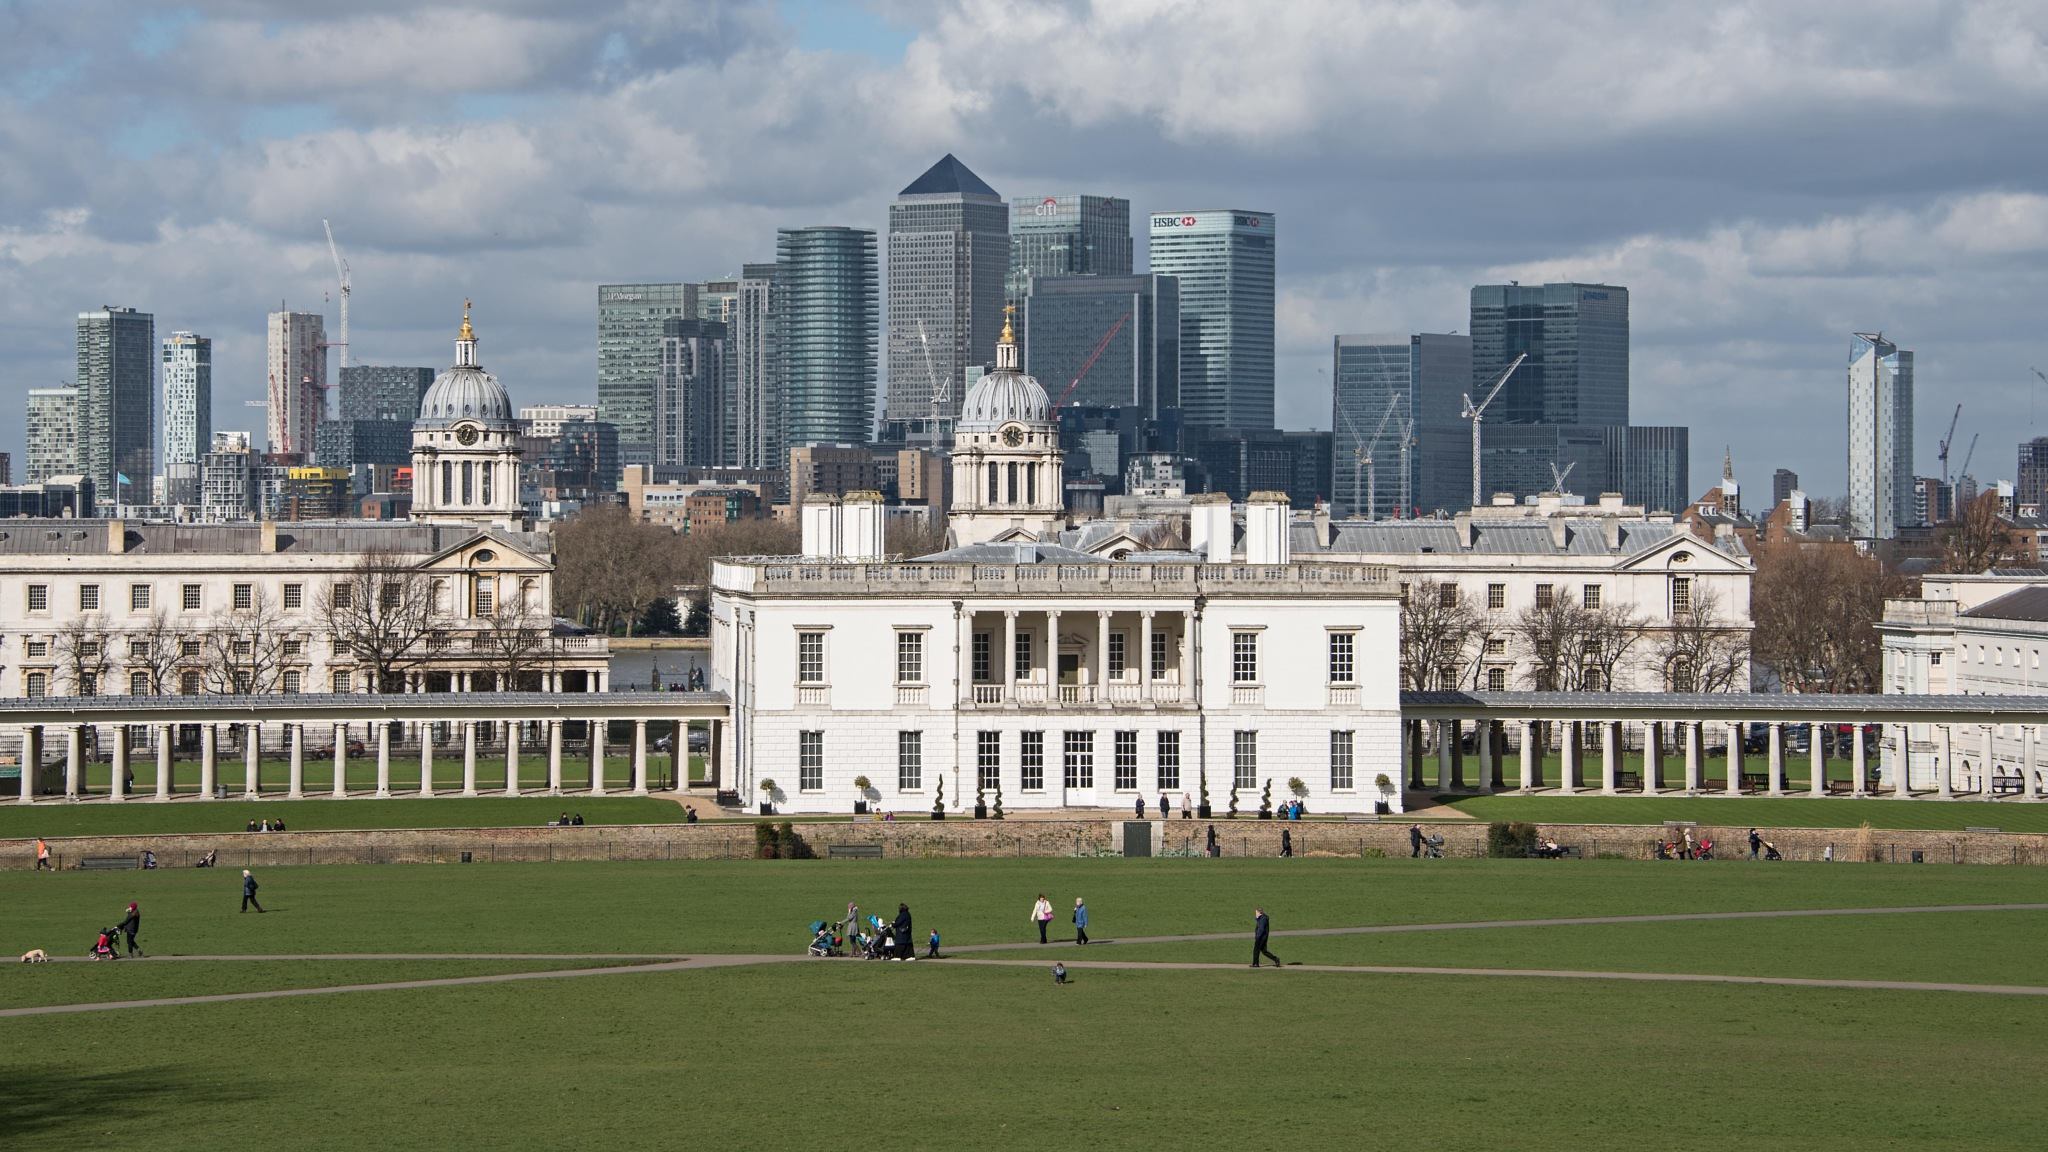 Postcard from Greenwich by BrianS